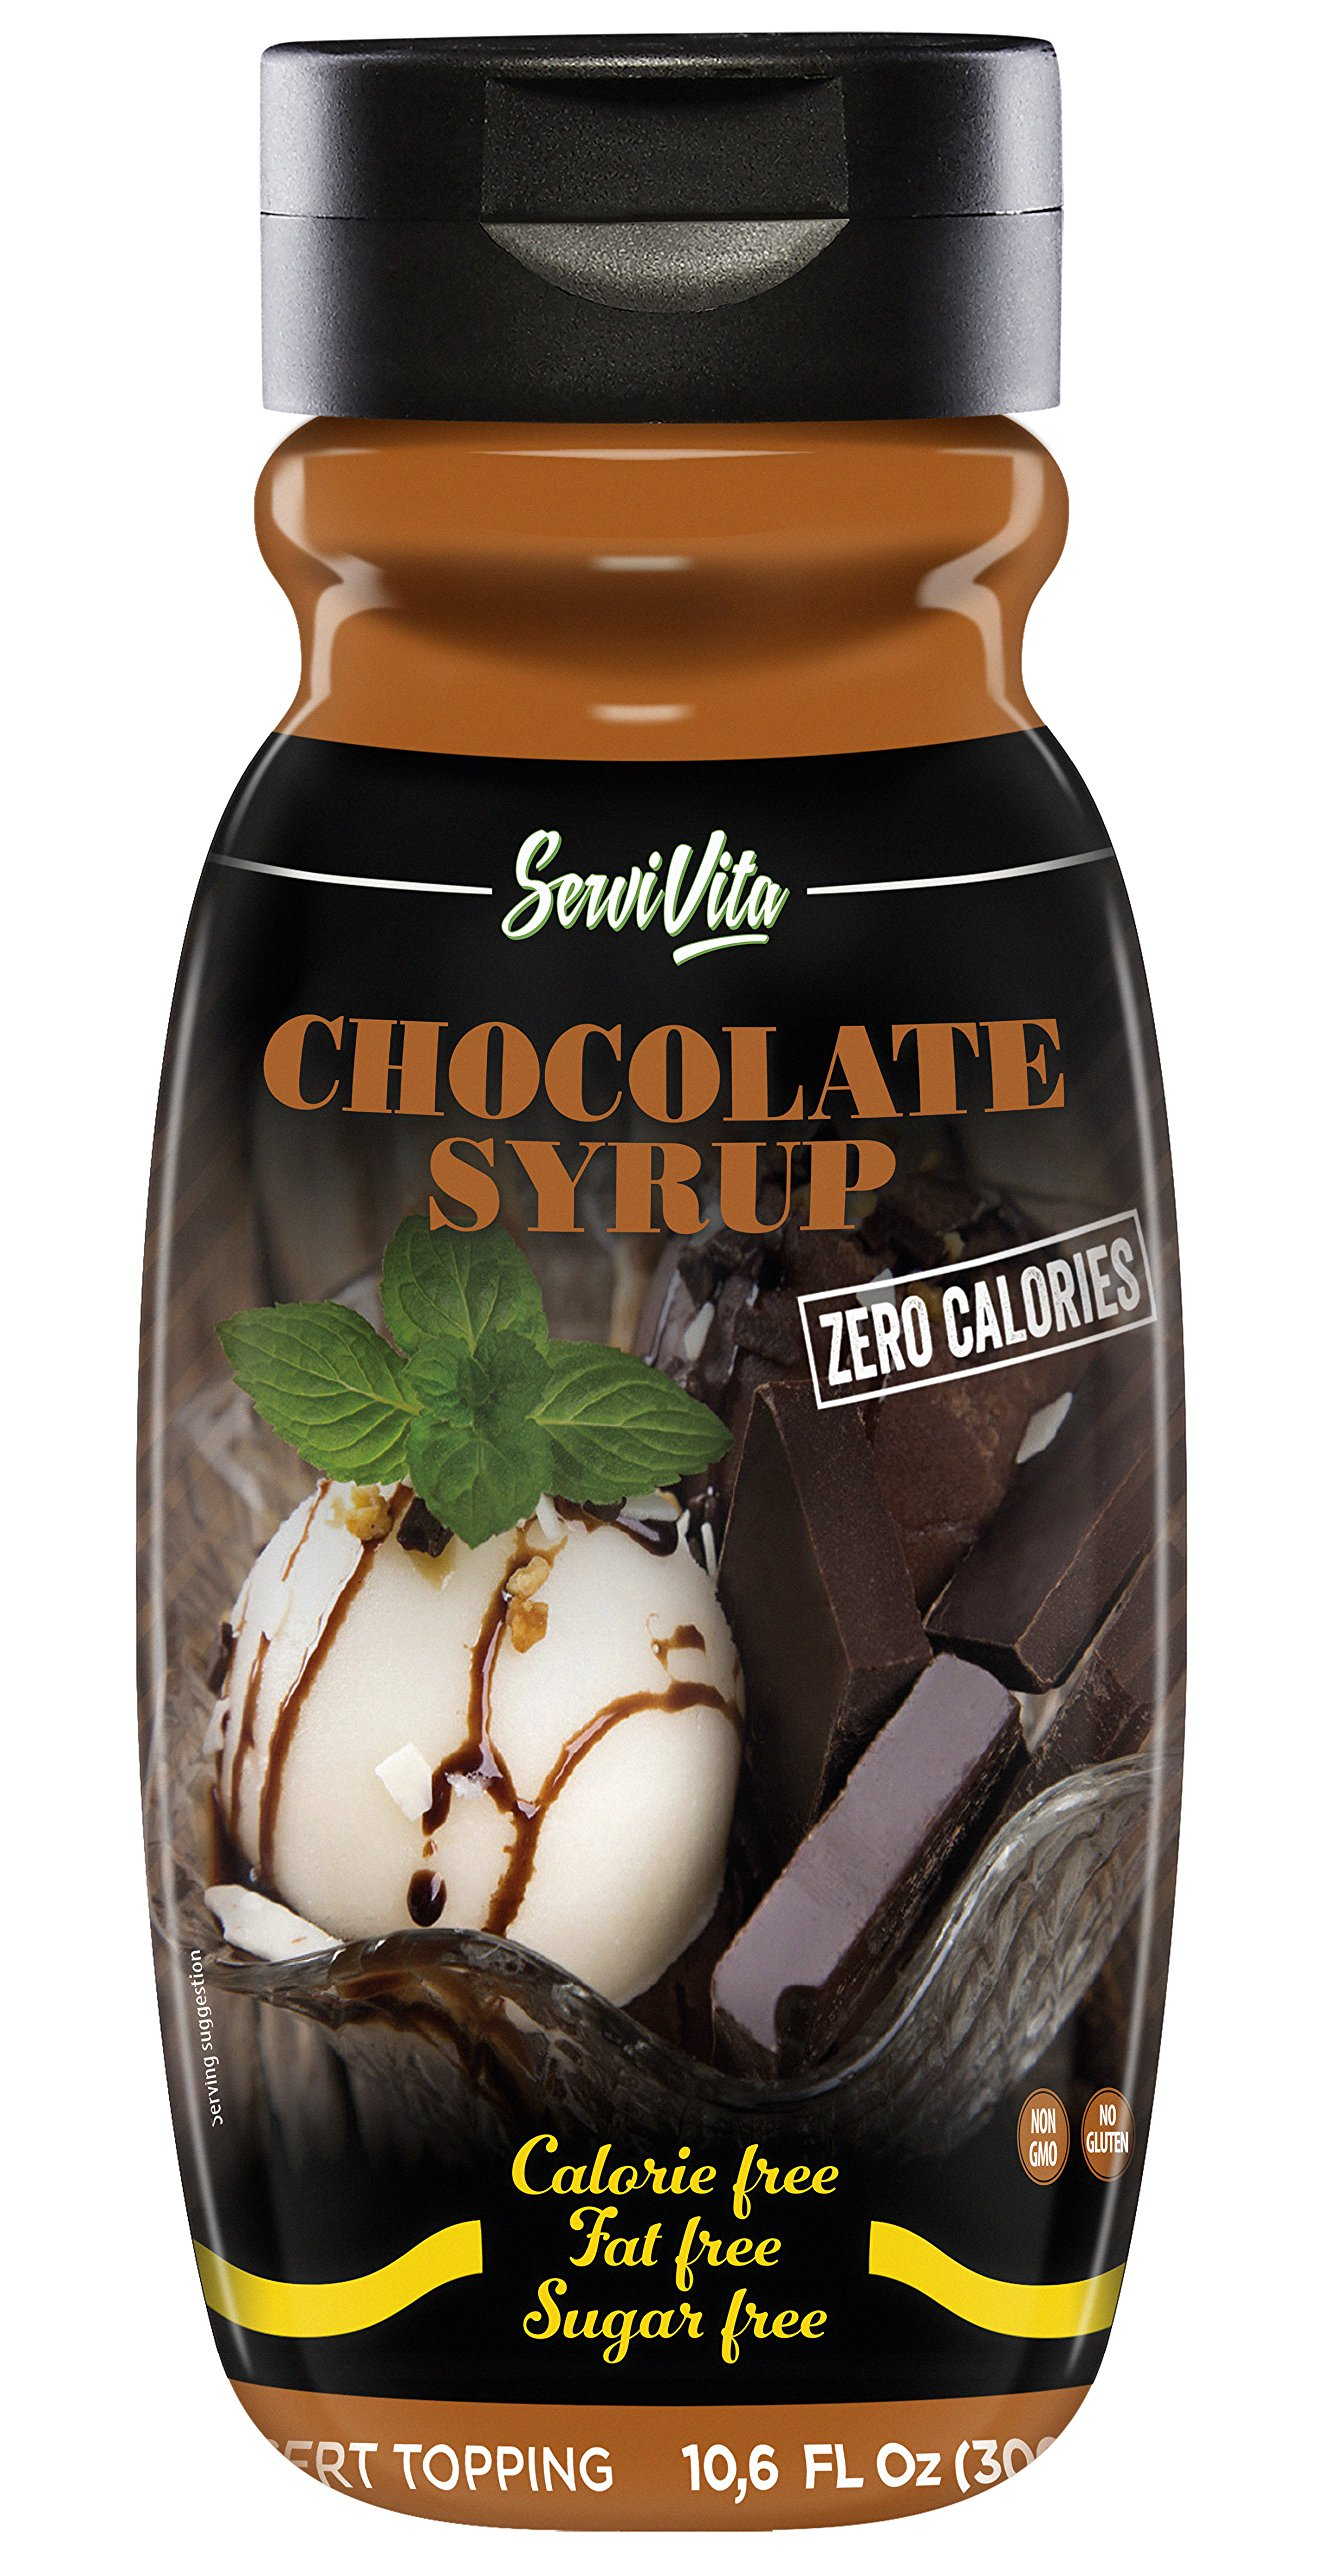 SERVIVITA ZERO CALORIES CHOCOLATE SYRUP 10.6 FL Oz